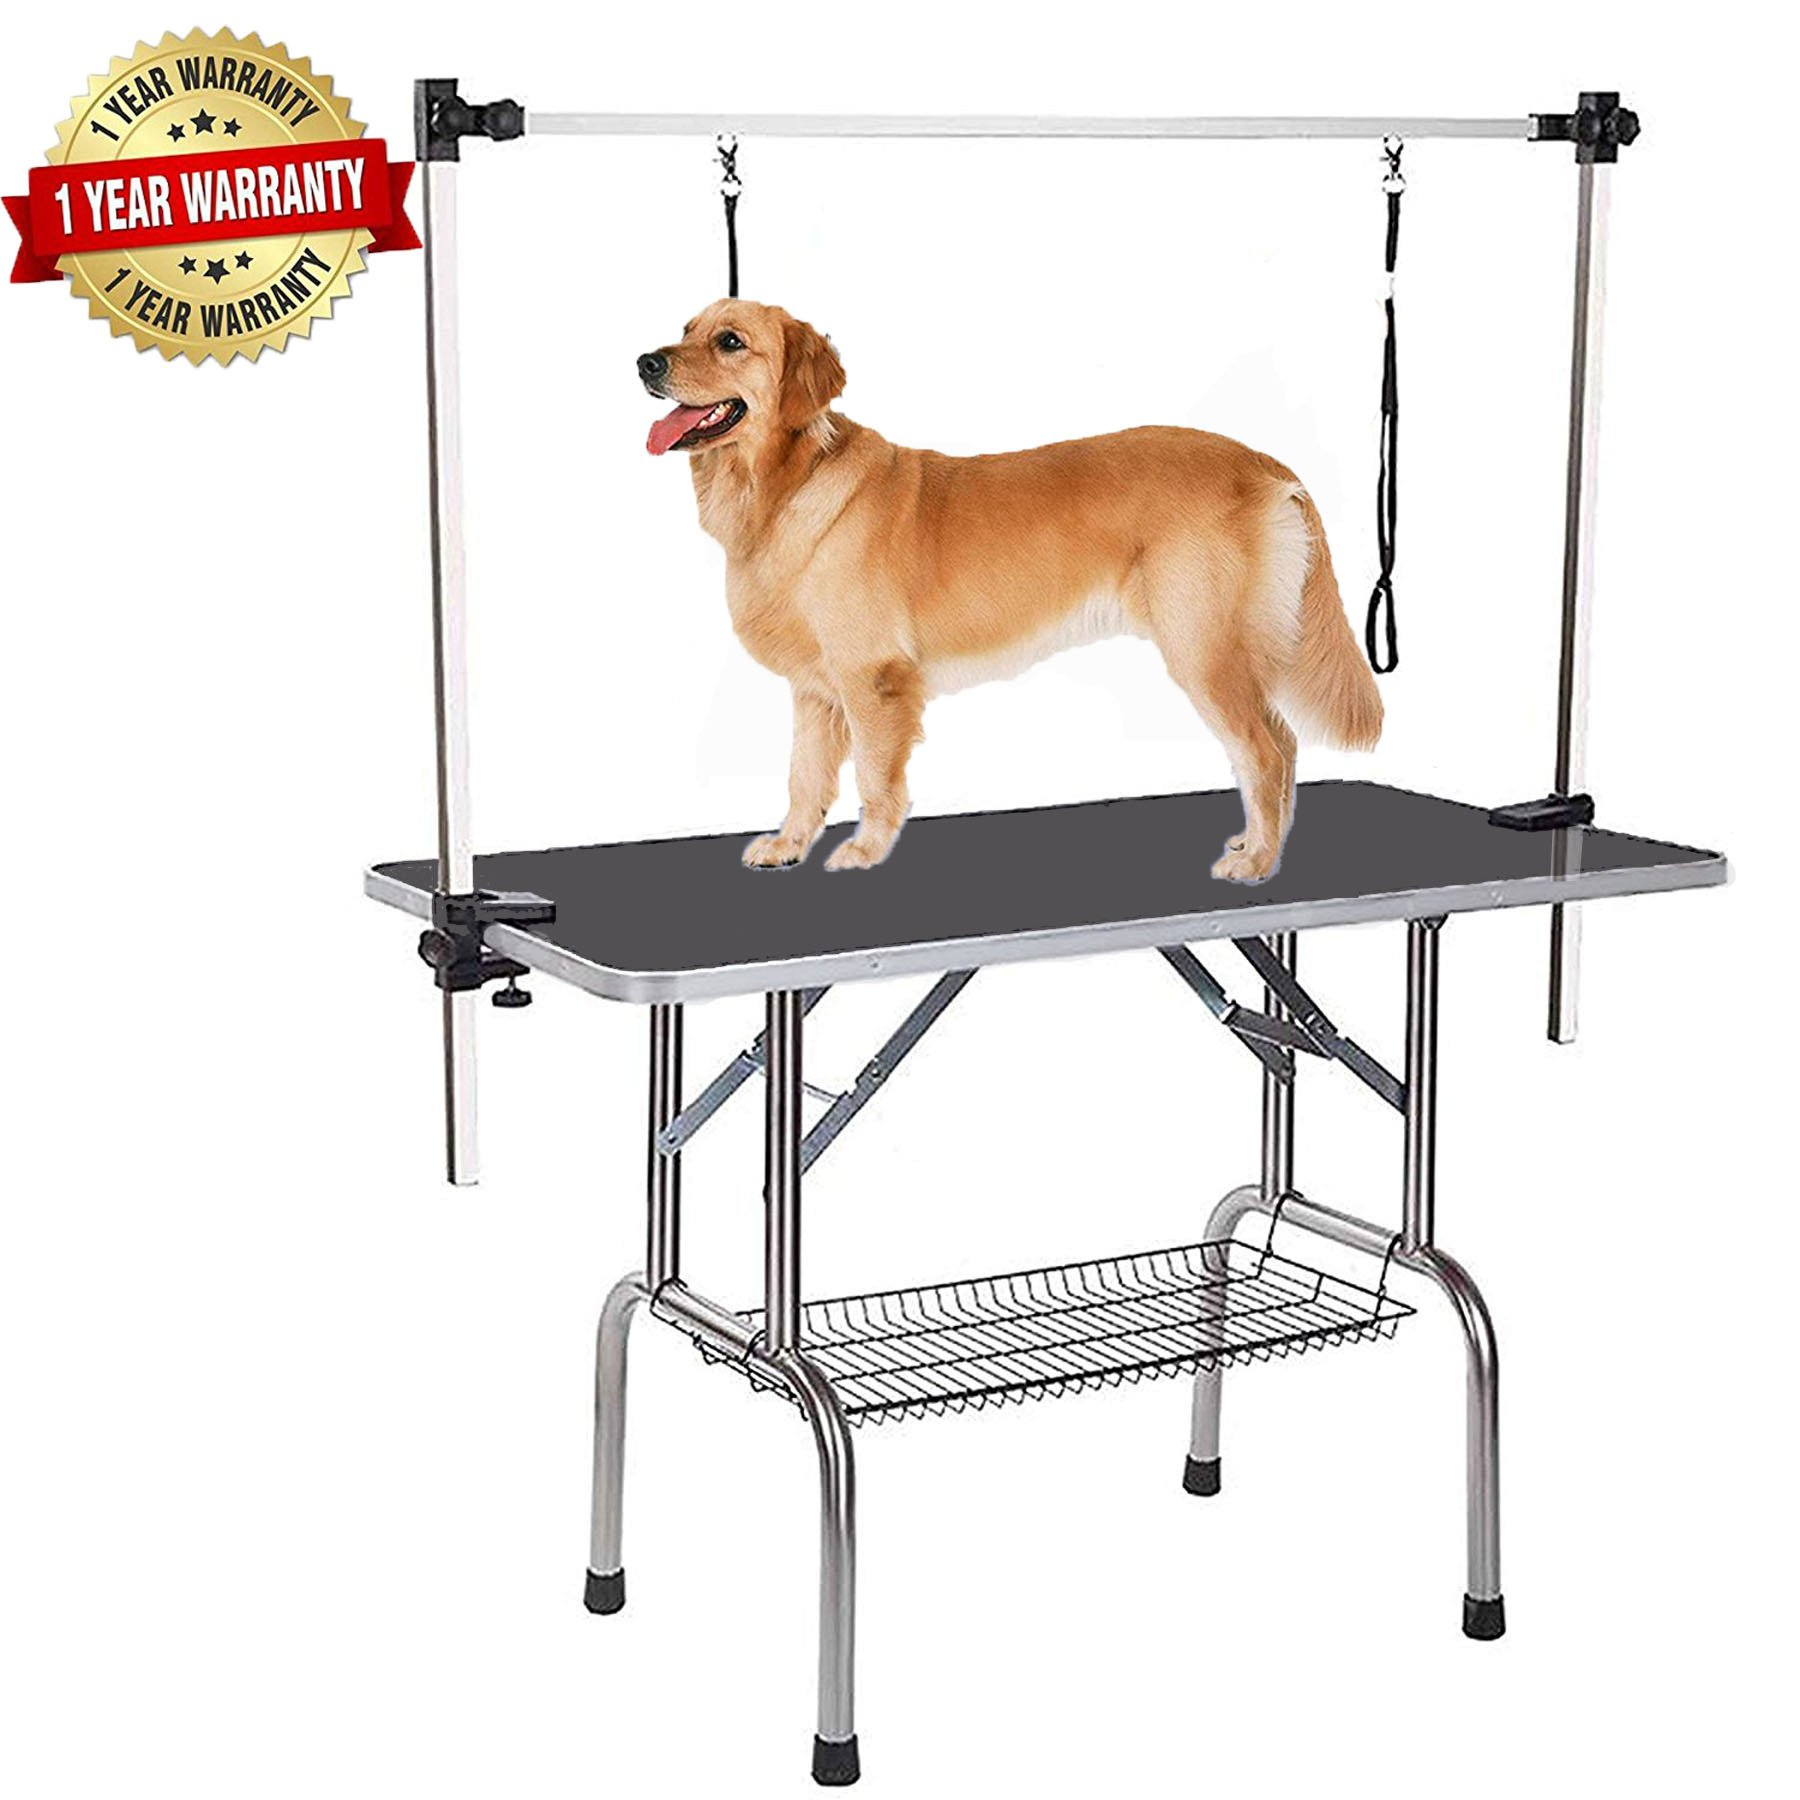 46'' x 24'' Professional Adjustable Heavy Duty Dog Pet Grooming Table W/Arm & Noose & Mesh Tray,Maximum Capacity Up to 250LB